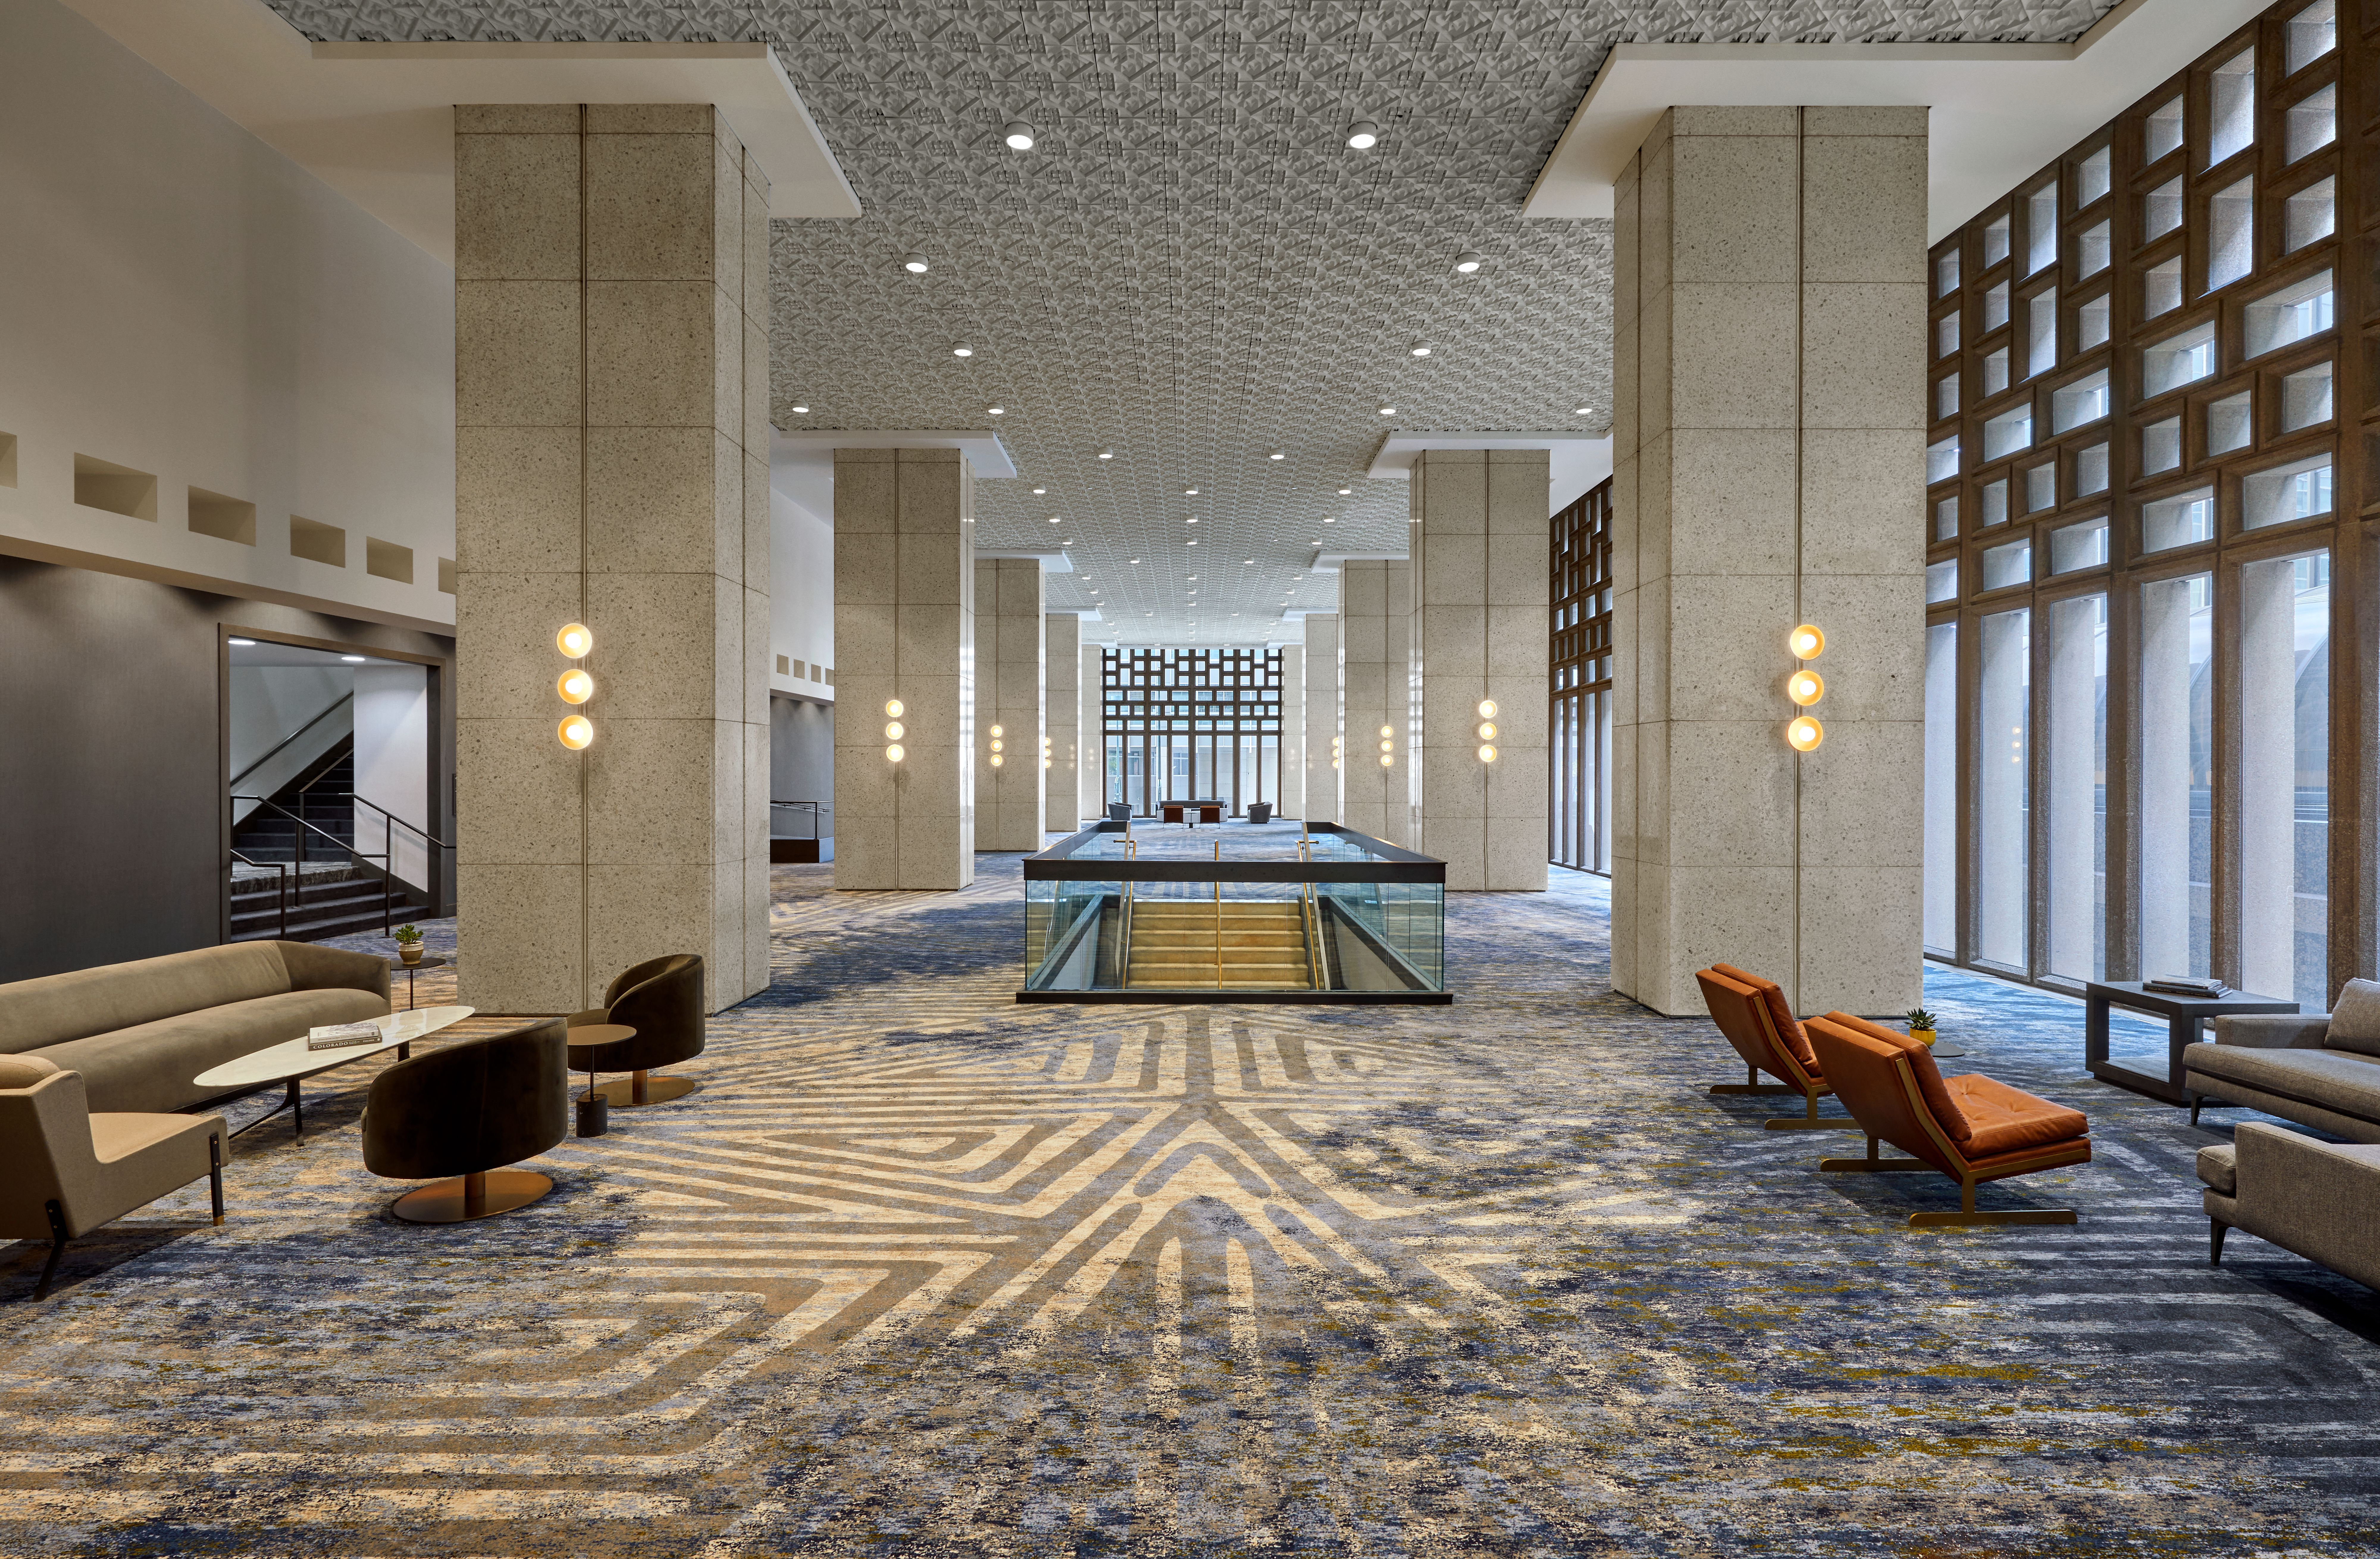 The convention center lobby at the Sheraton